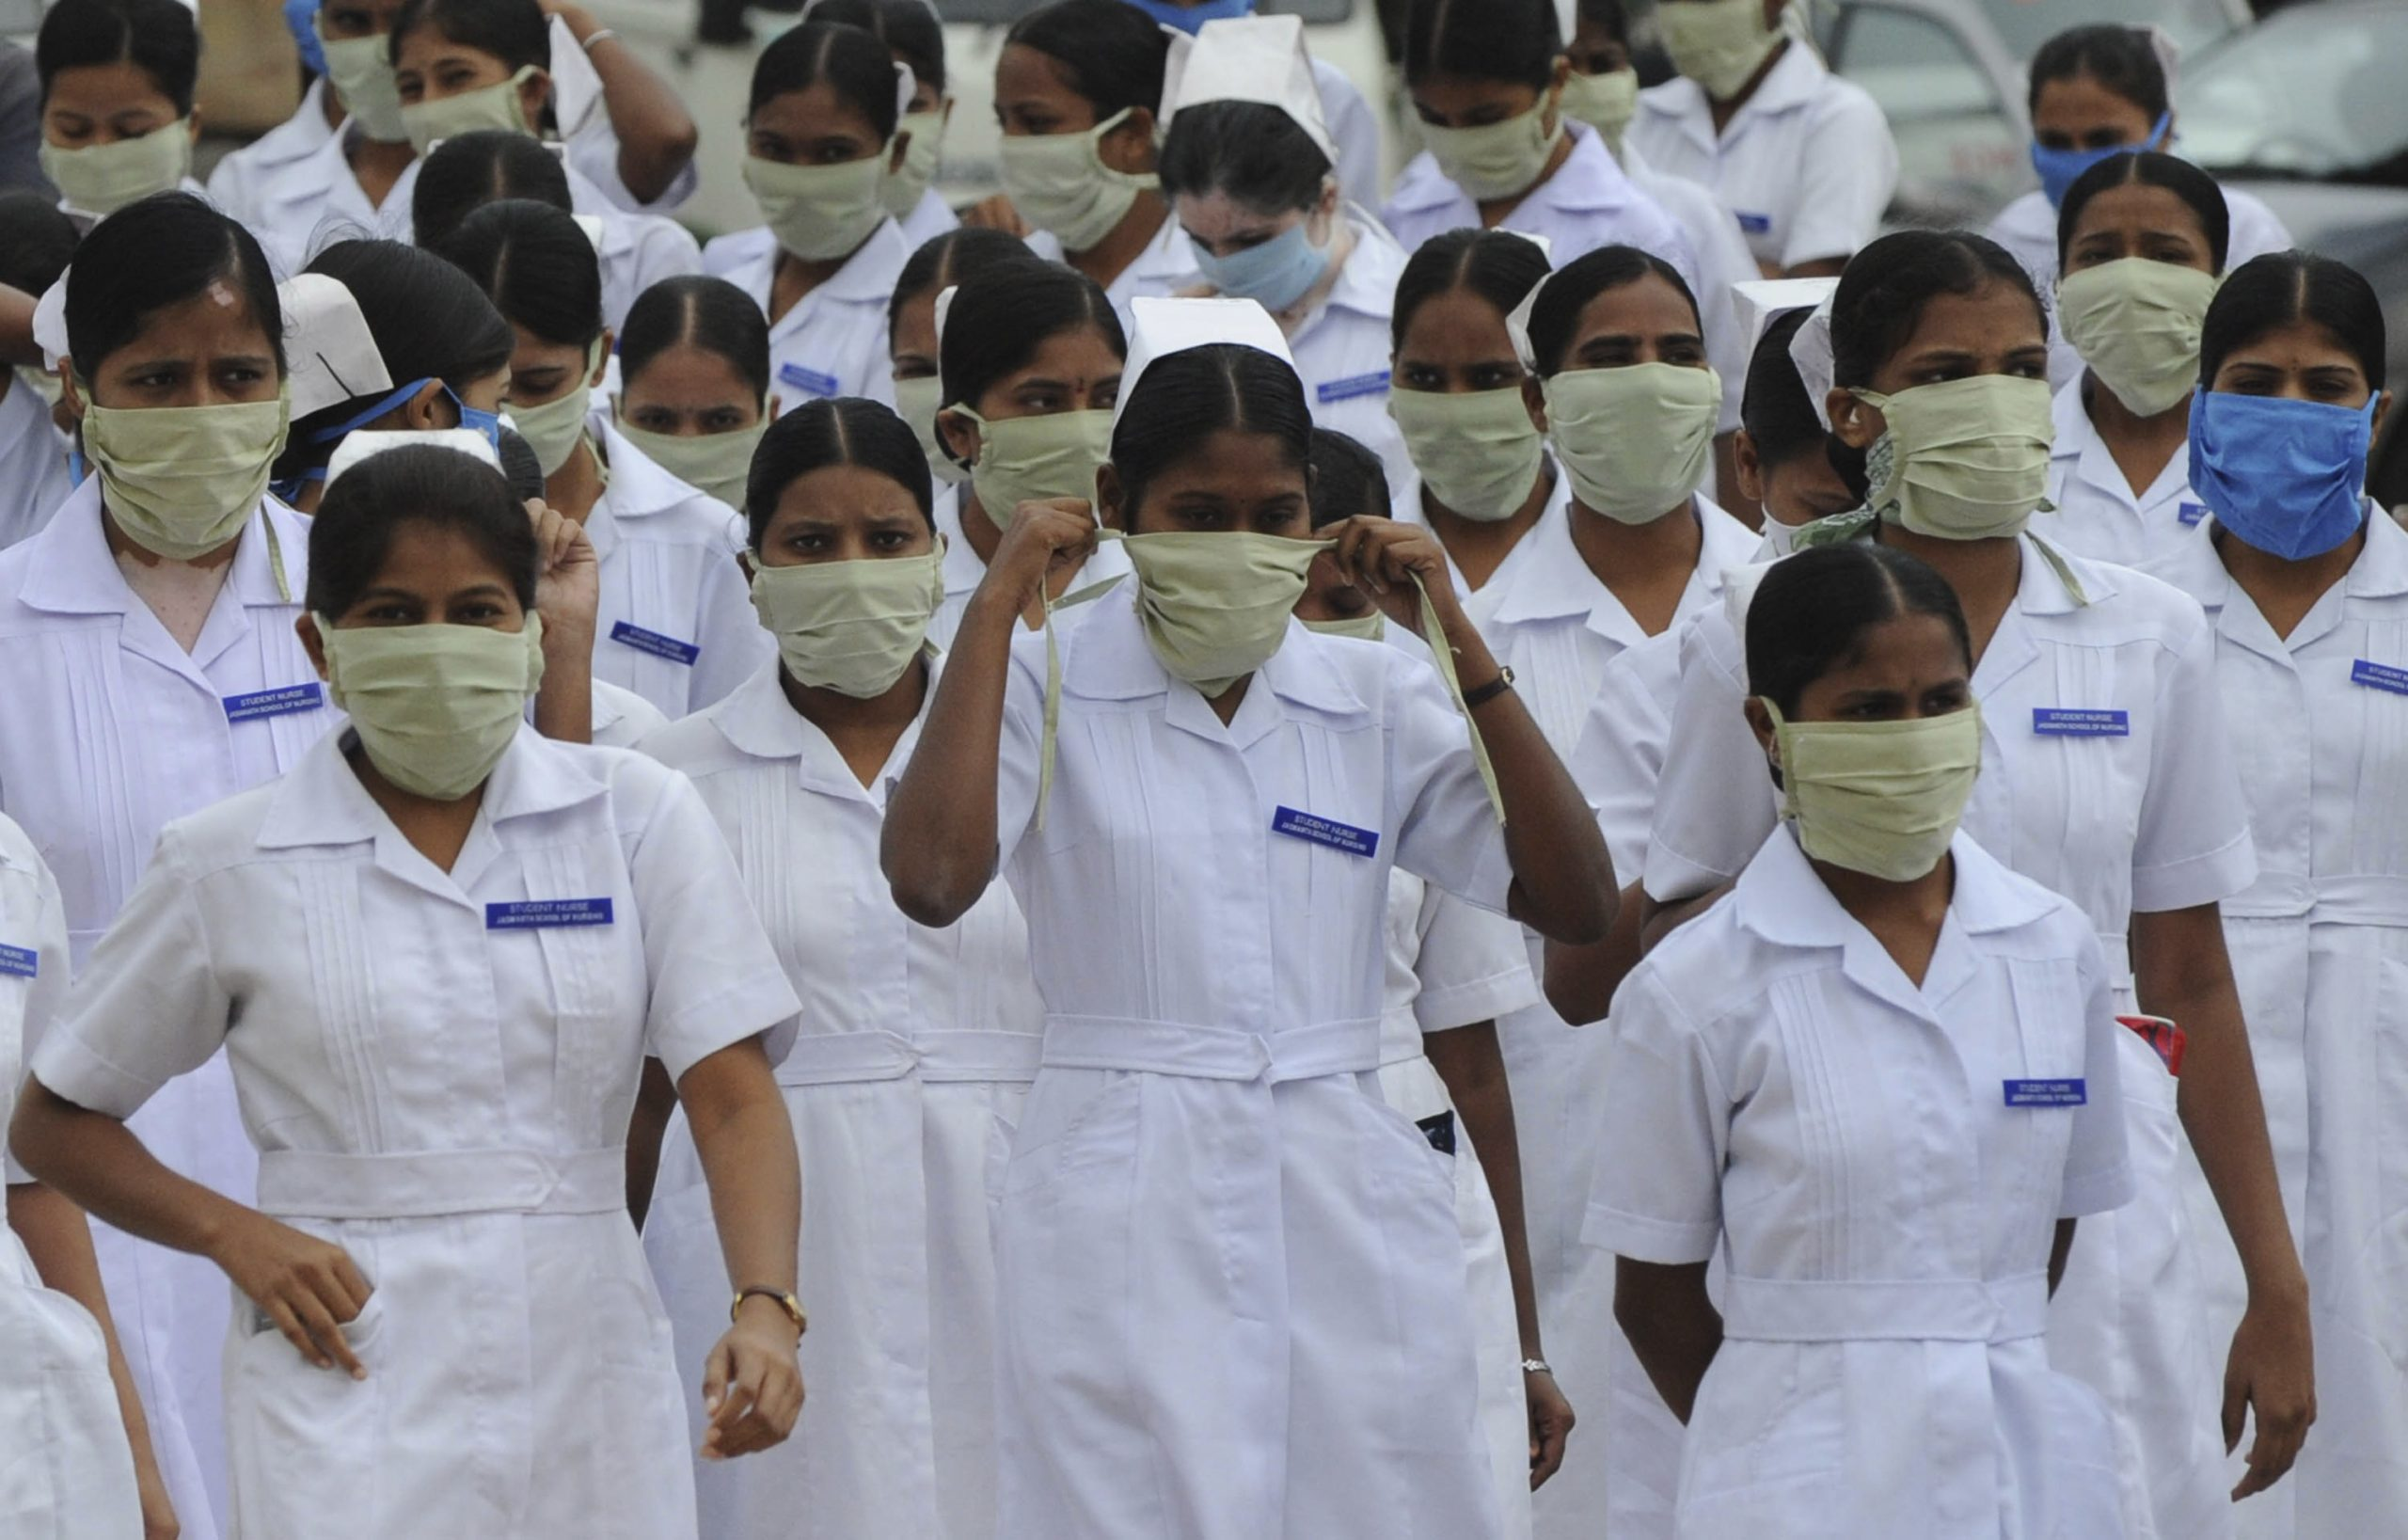 Indian nursing students wear masks at the Government Gandhi Hospital in Hyderabad on August 7, 2010. Health authorities confirmed that 15 more persons have tested positive for Swine Flu in the twin cities area of Hyderabad, local reports said. Six out of 21 nurses admitted to the hospital have tested positive for H1N1. AFP PHOTO/Noah SEELAM (Photo credit should read NOAH SEELAM/AFP via Getty Images)